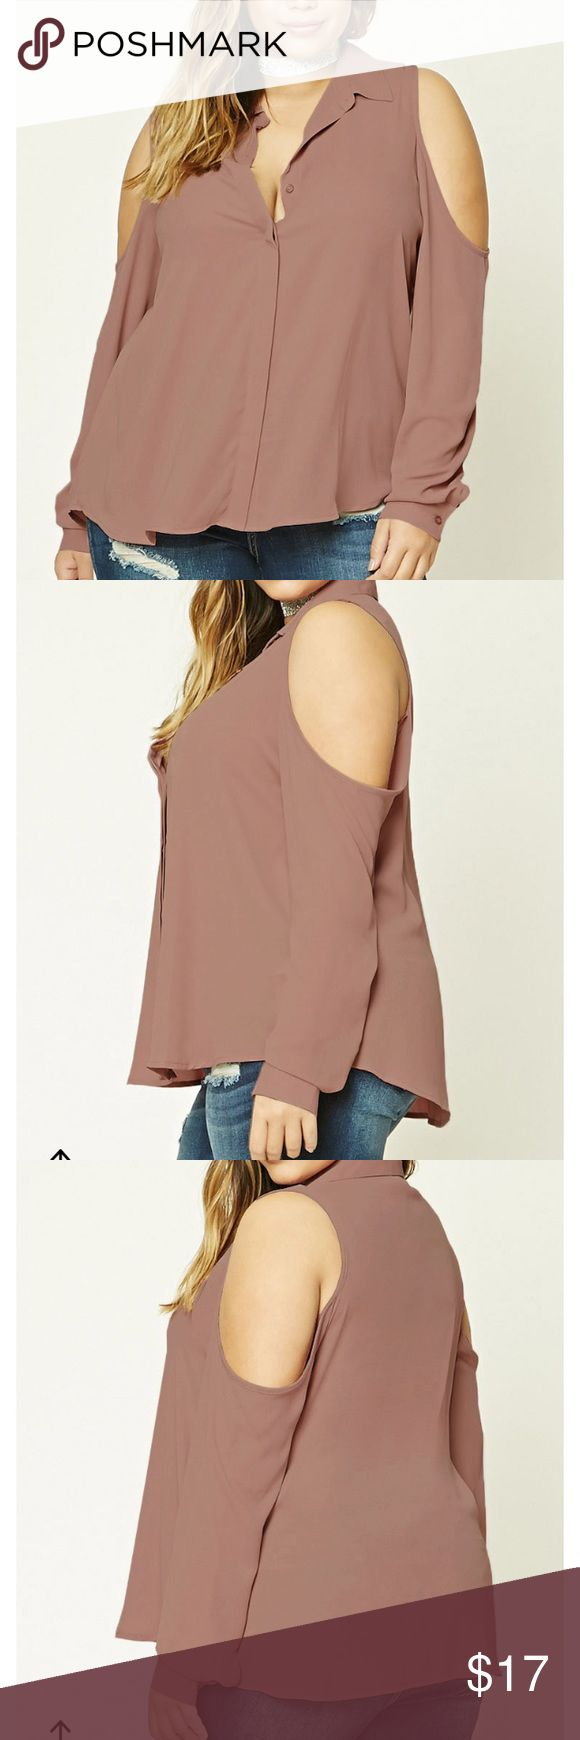 Mauve Cold Shoulder Blouse Mauve cold shoulder blouse from Forever 21, NWT. Too small for me in the chest area. This is only up for two days so get it now! Forever 21 Tops Blouses